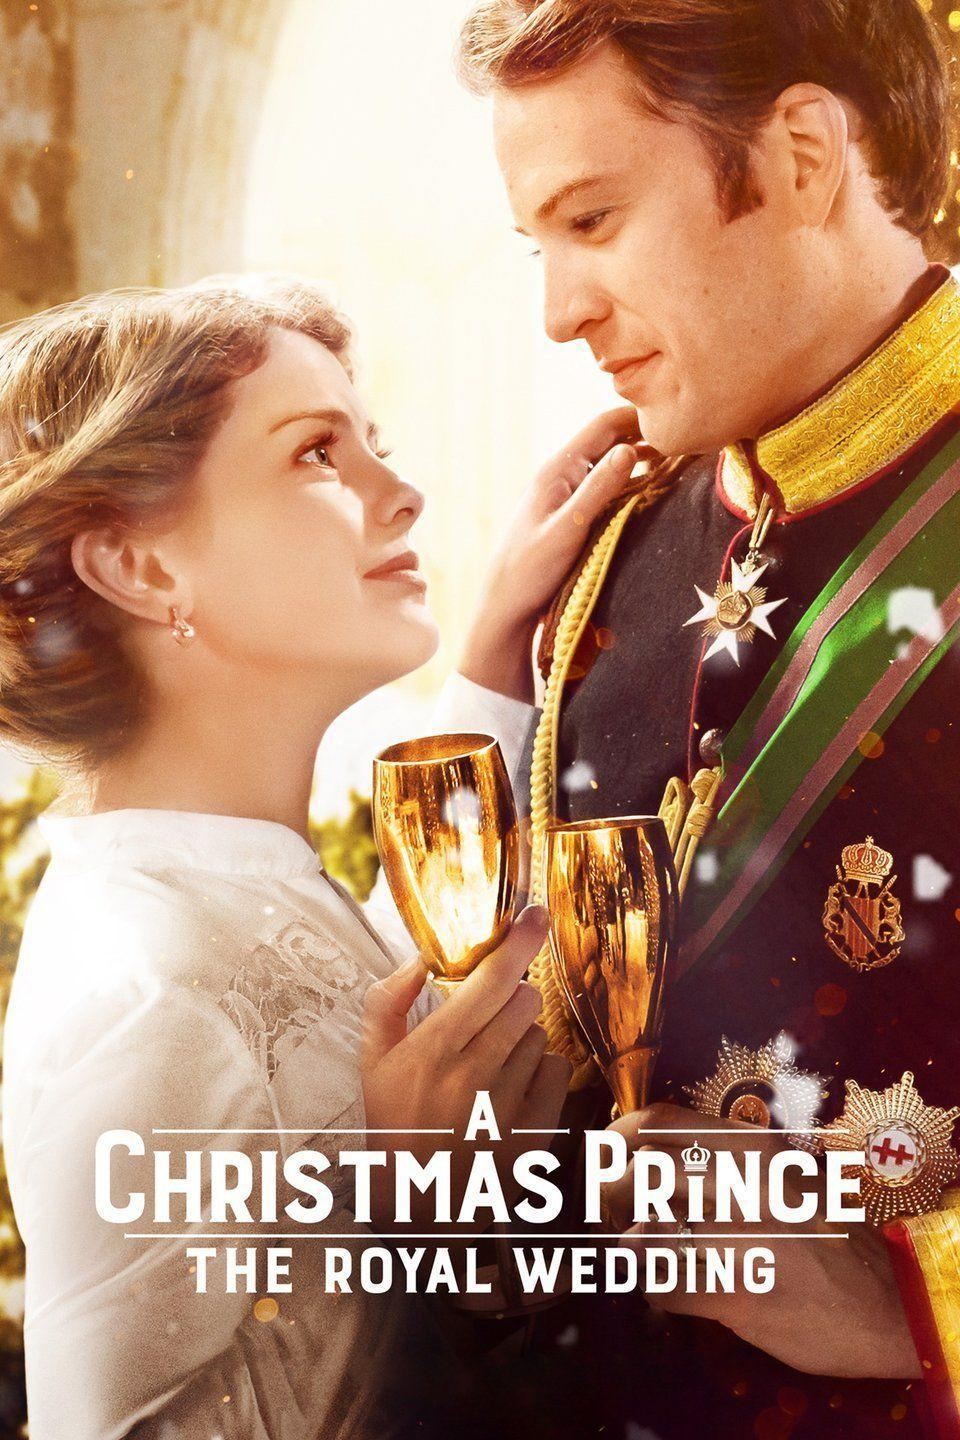 """<p>King Richard and Amber return to Netflix in the anticipated follow-up to <em>A Christmas Prince</em>. A year after their engagement, the two must overcome adversity to make their way down the aisle. </p><p><a class=""""link rapid-noclick-resp"""" href=""""https://www.netflix.com/title/80238204"""" rel=""""nofollow noopener"""" target=""""_blank"""" data-ylk=""""slk:STREAM NOW"""">STREAM NOW</a></p>"""